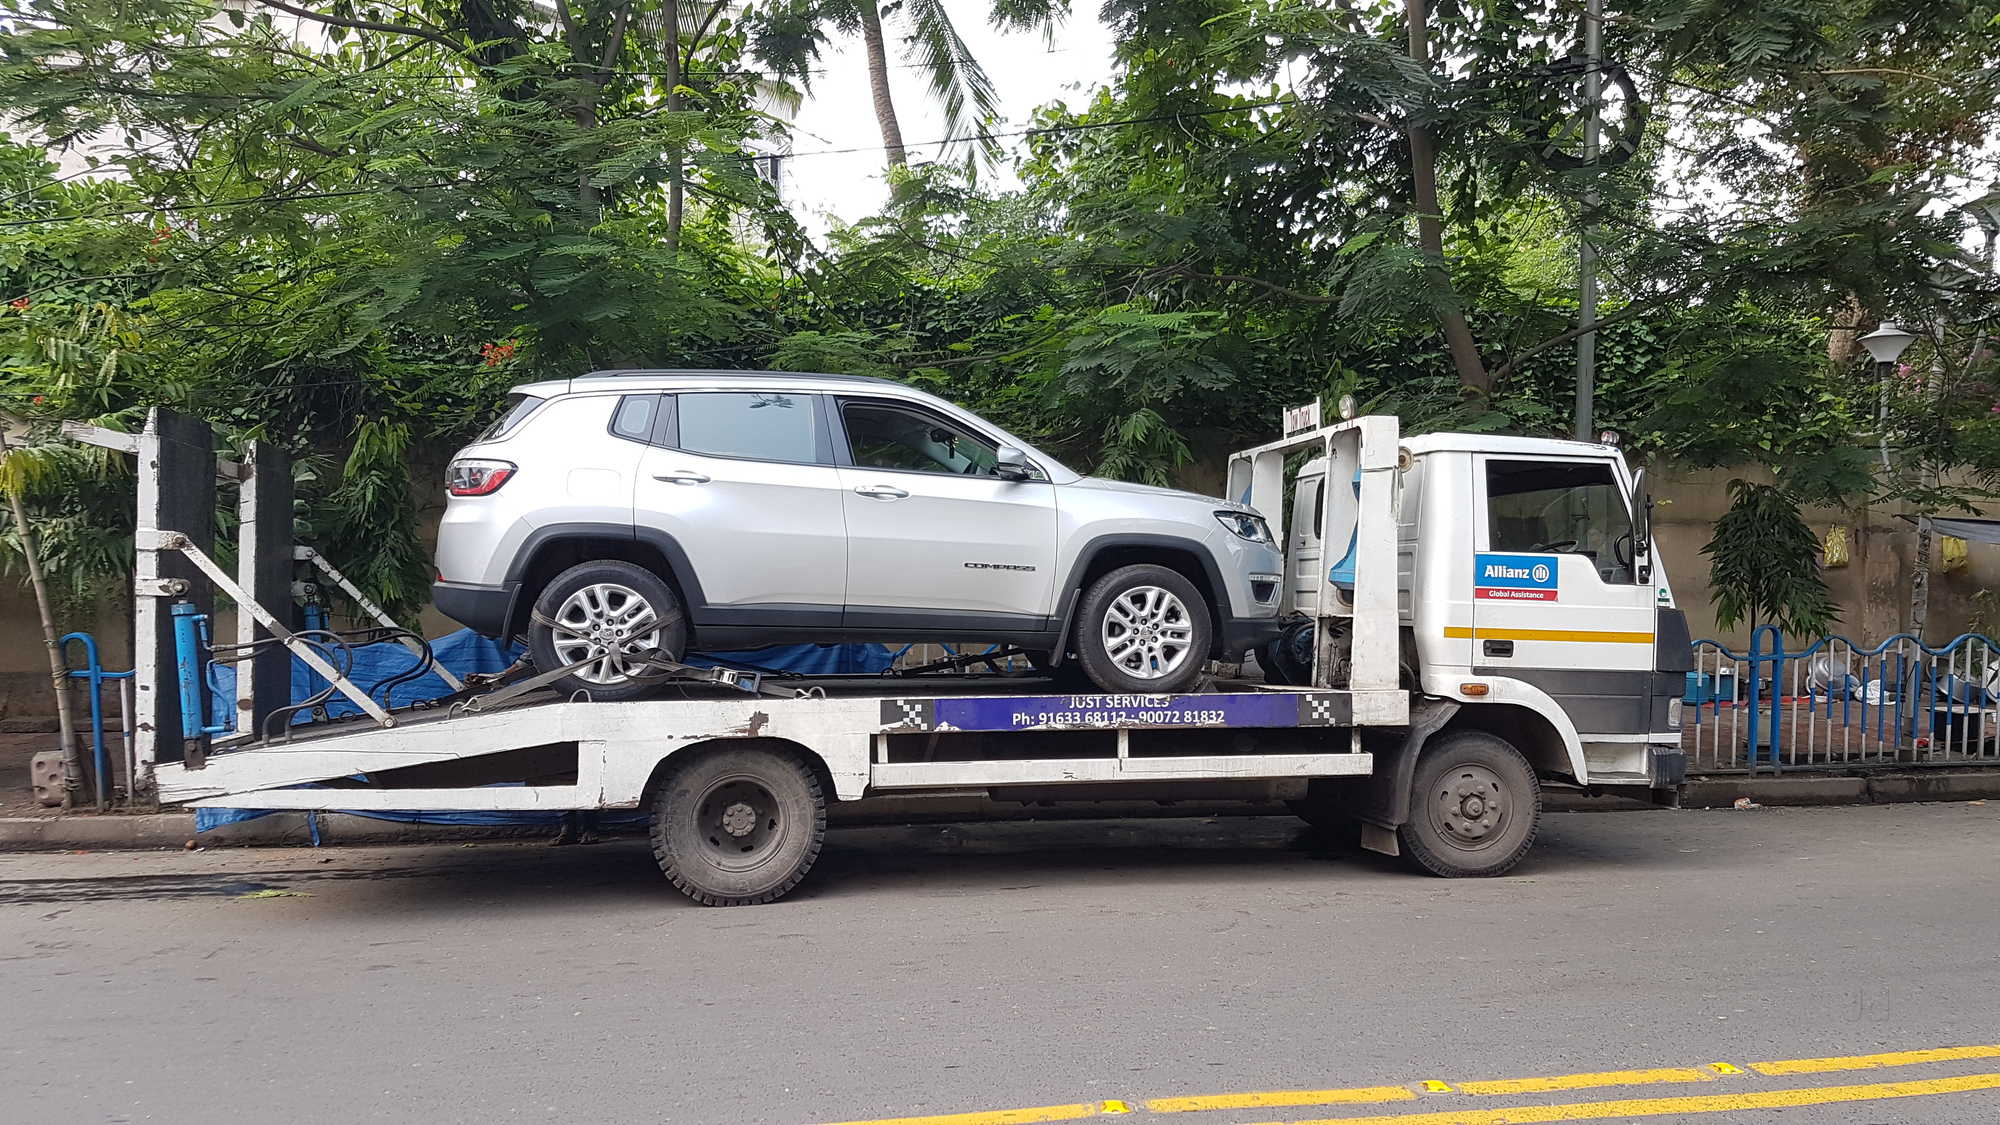 Top 30 Car Towing Services in Kolkata - Roadside Assistance for Car -  Justdial